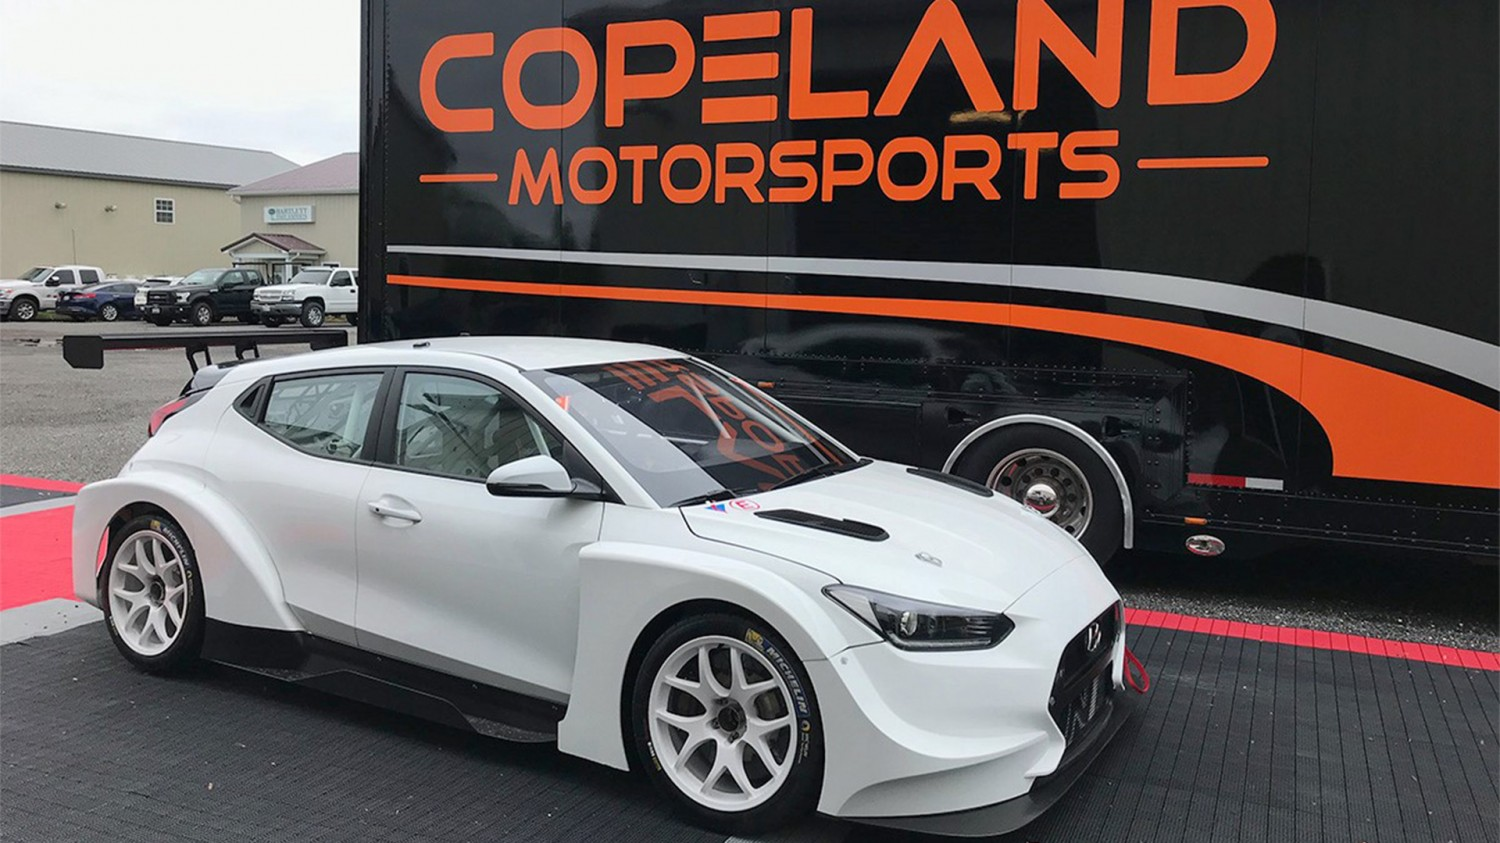 TCA Champion Tyler Maxson Commits to Hyundai and Copeland Motorsports TCR Program for 2020